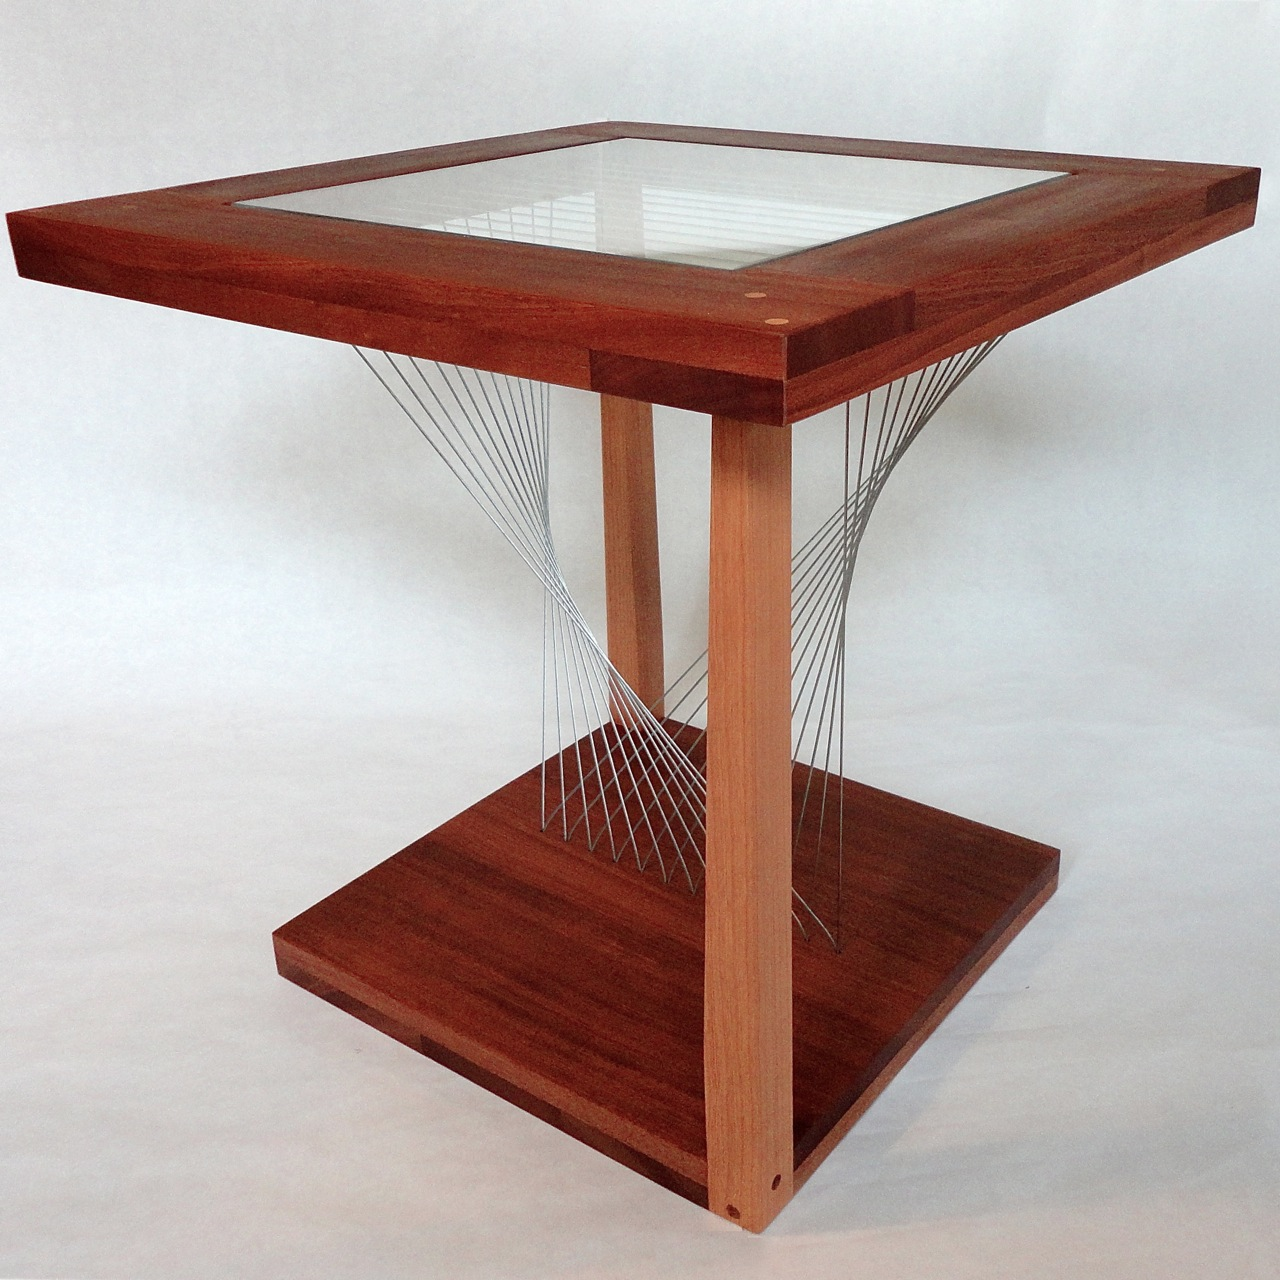 Balance end Table by Robby Cuthbert